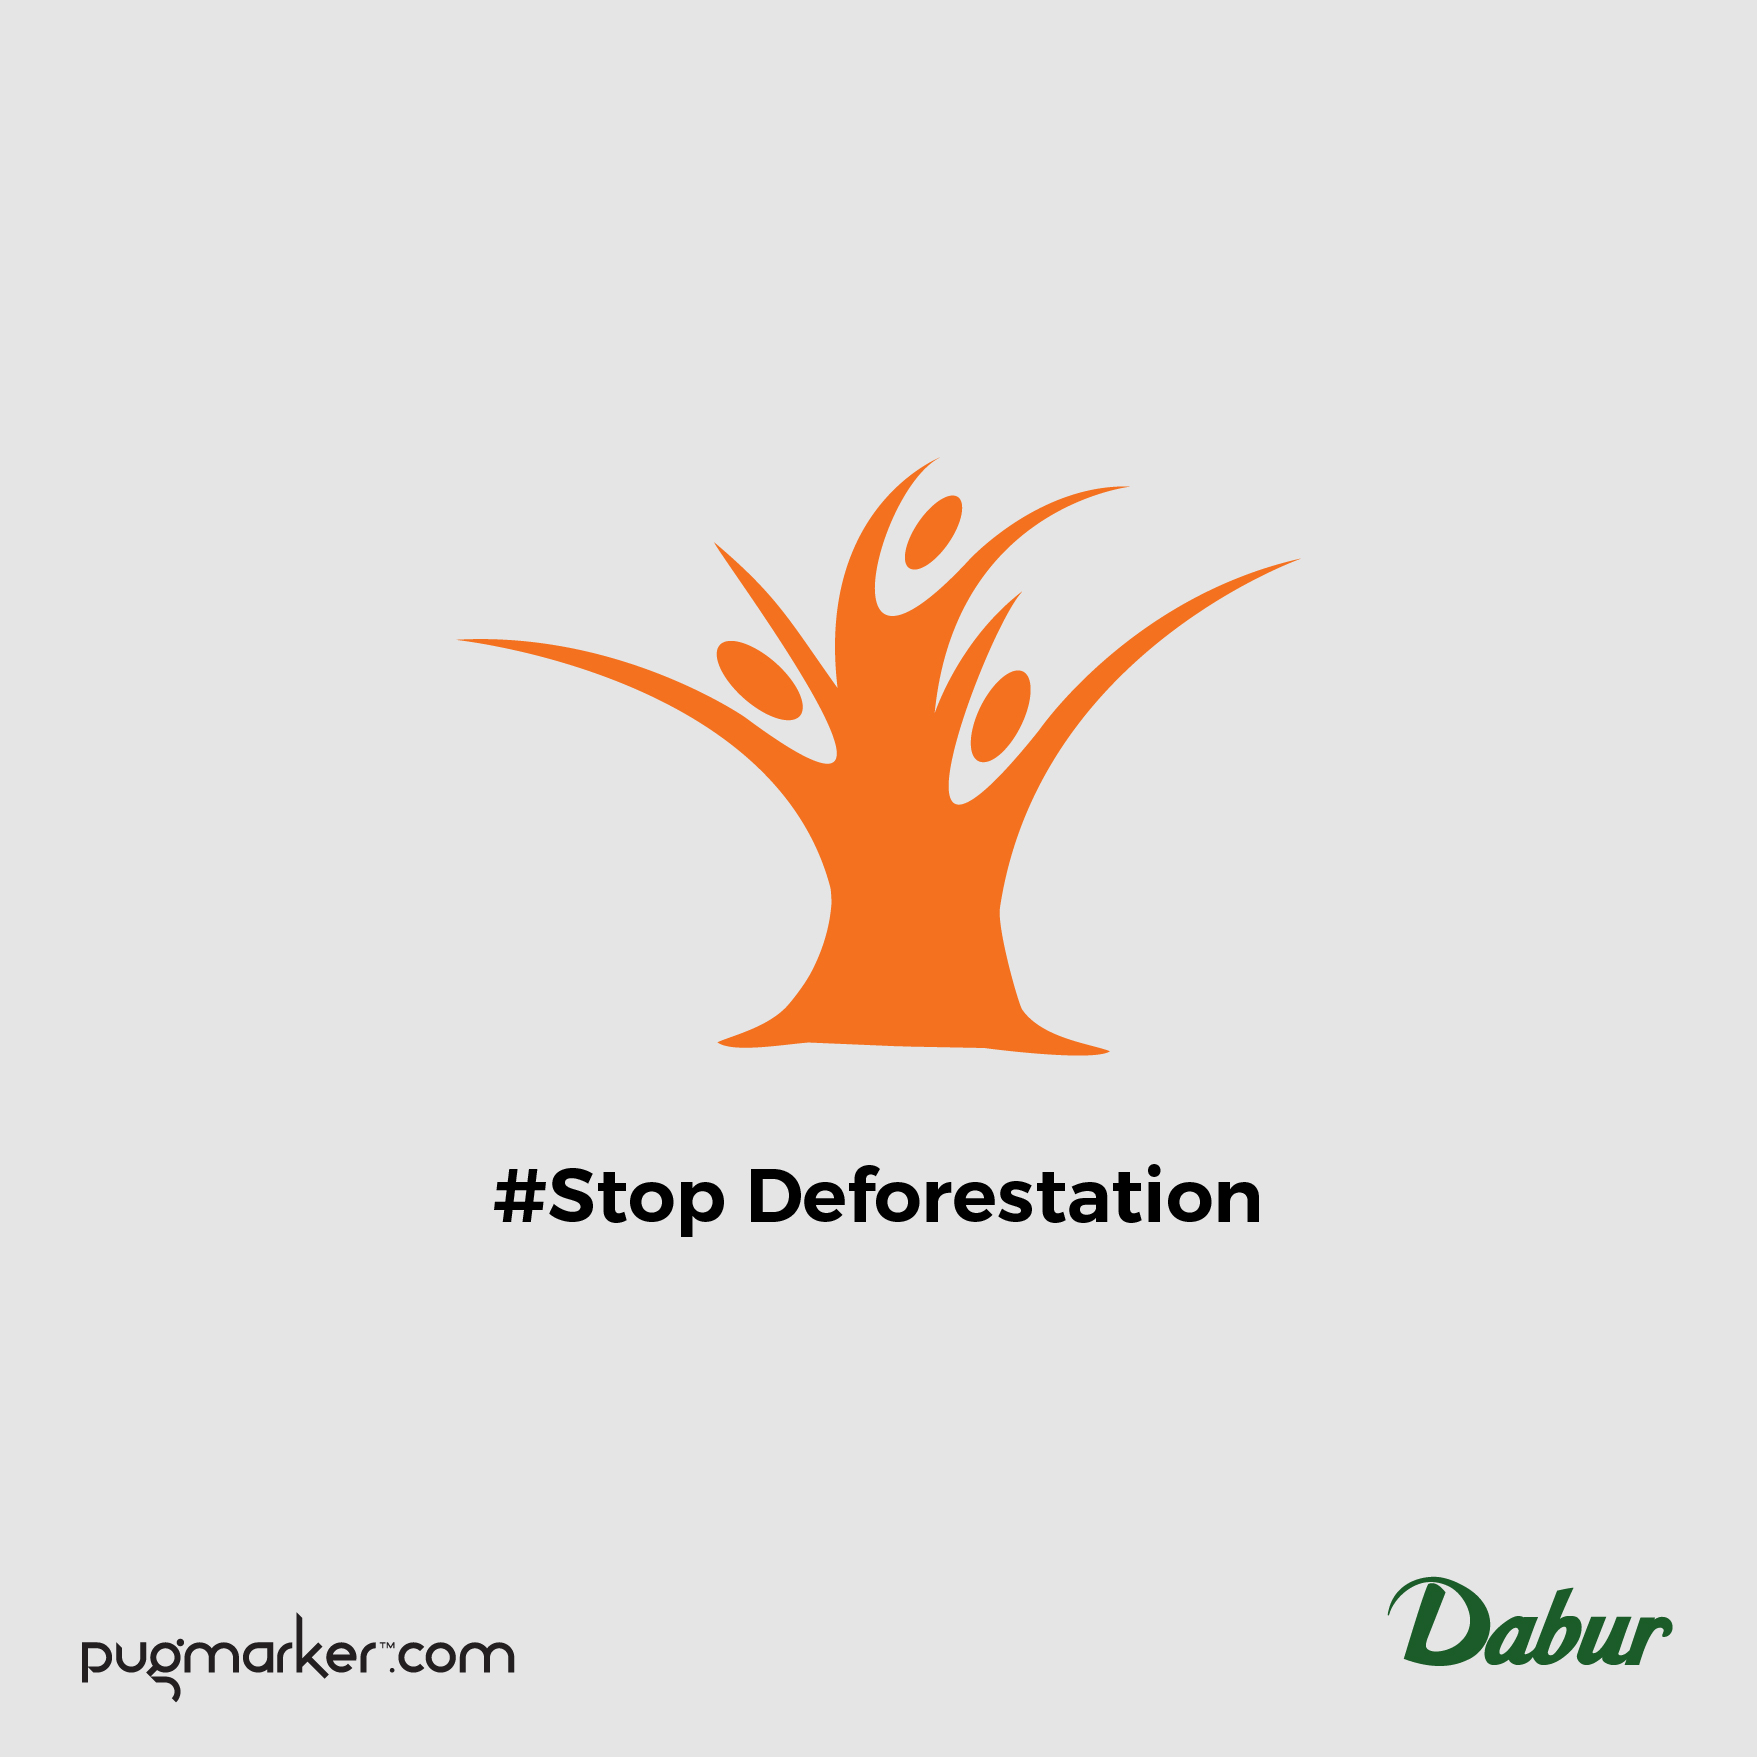 Dabur - Sto Deforestation